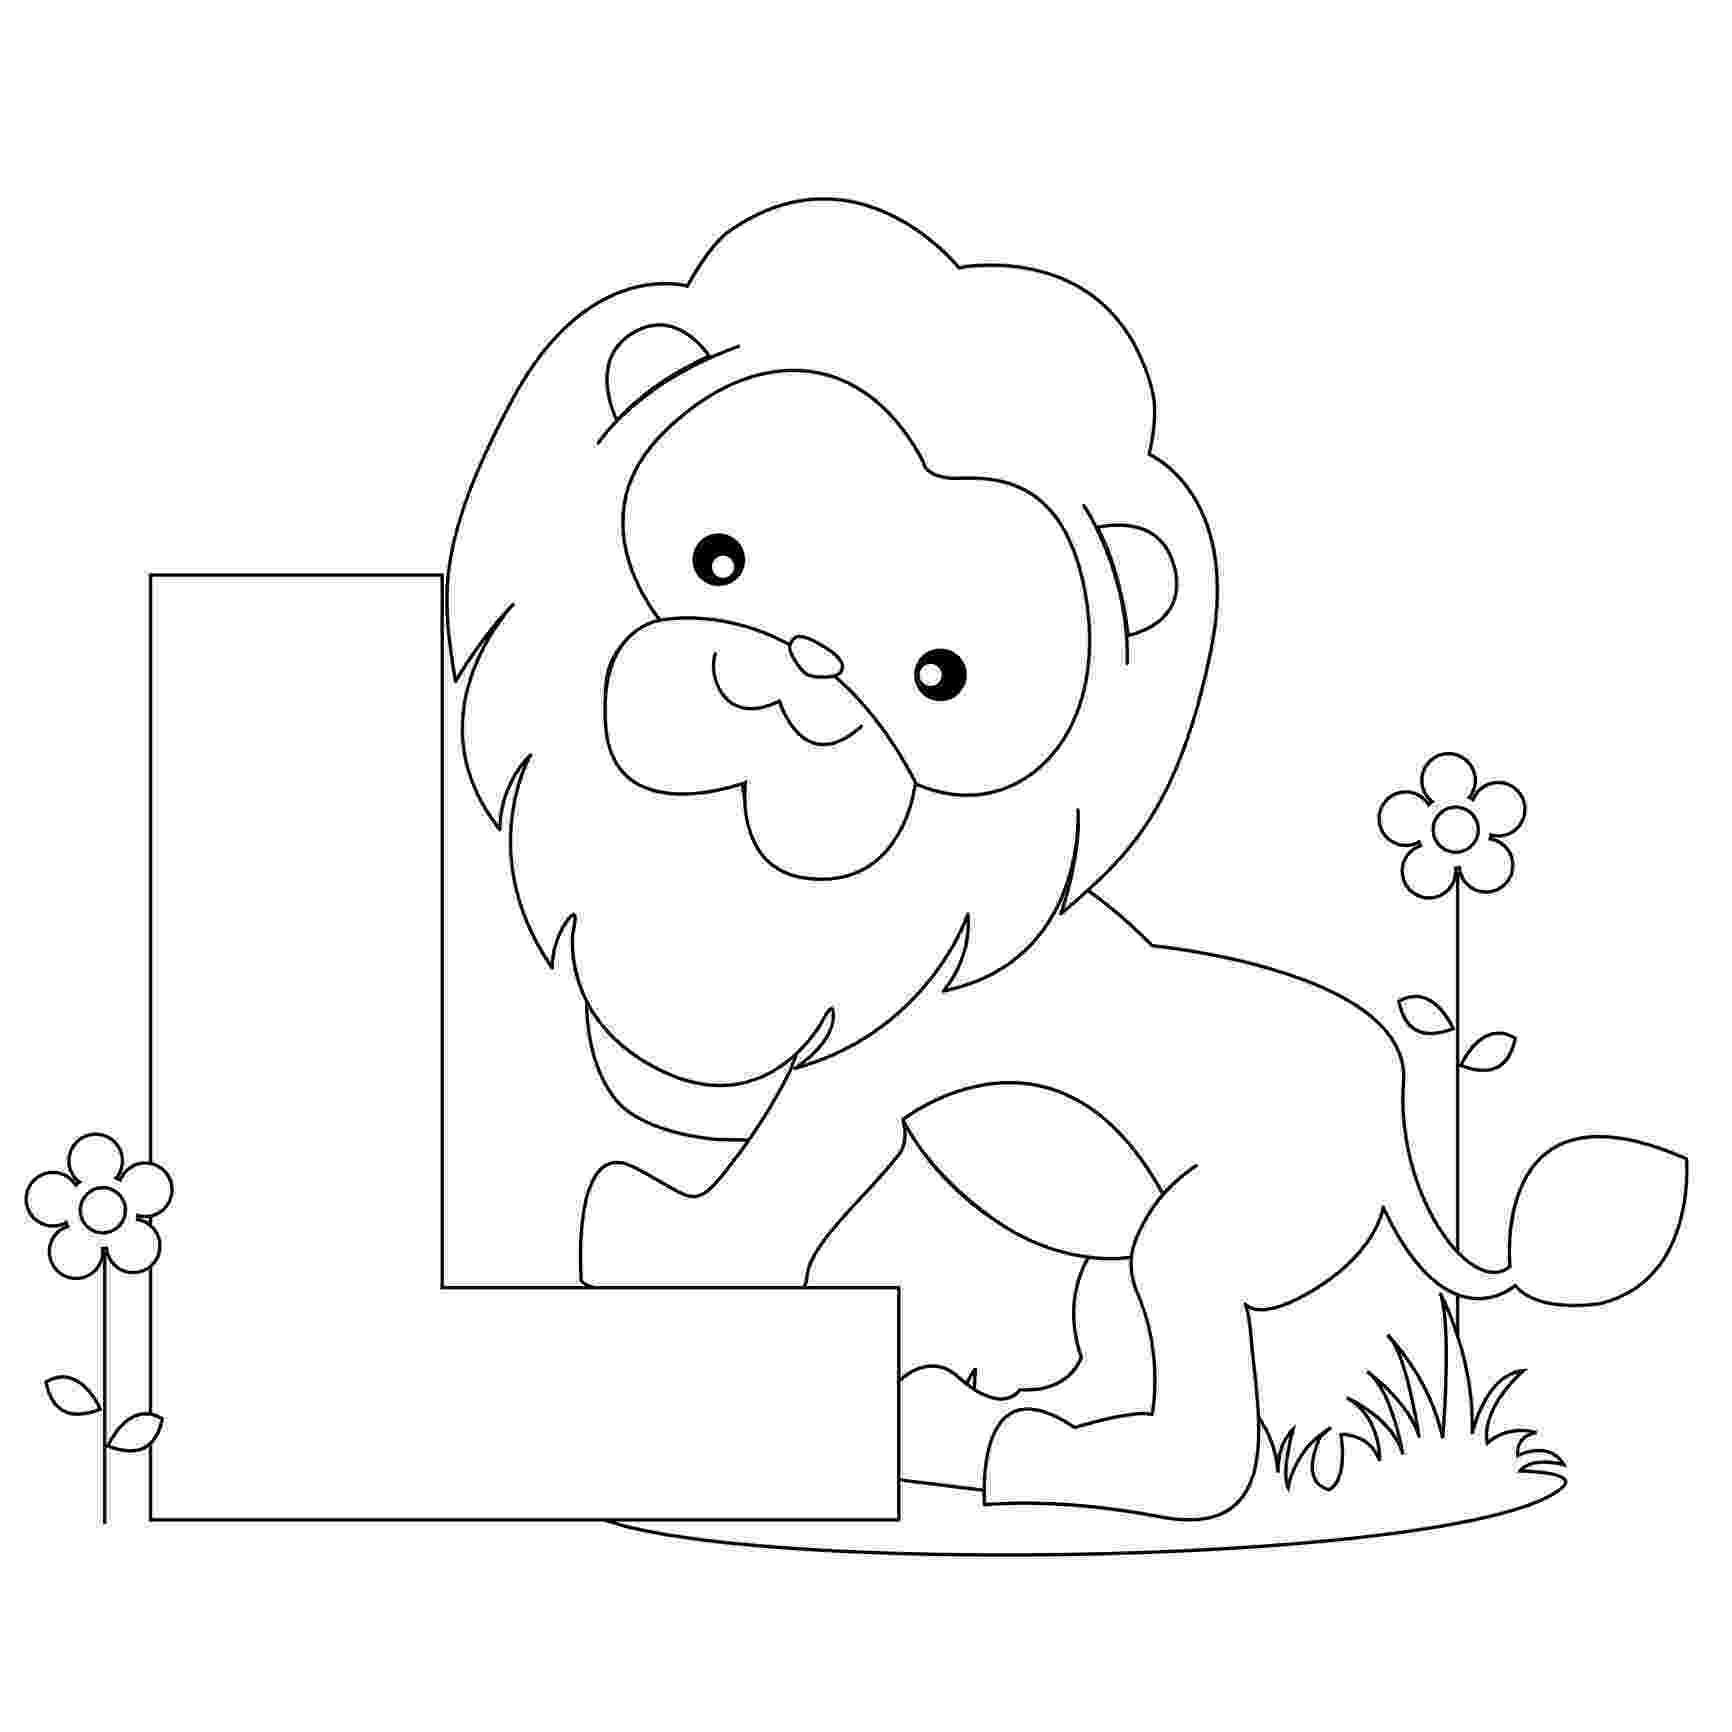 coloring pages of letters free printable alphabet coloring pages for kids best of pages coloring letters 1 1